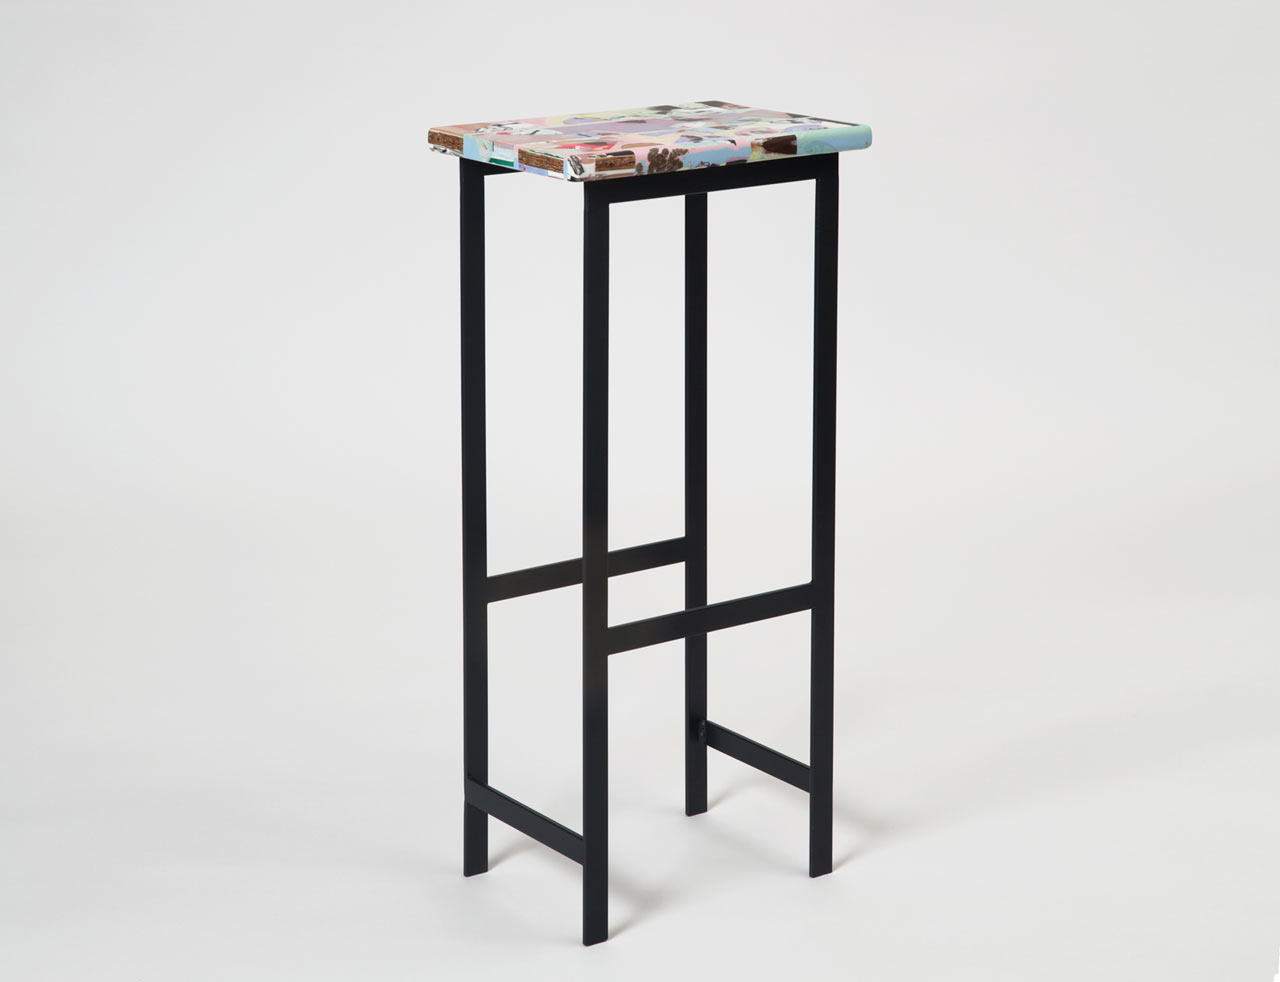 Resin-Stool-Chen-Chen-Kai-Williams-3